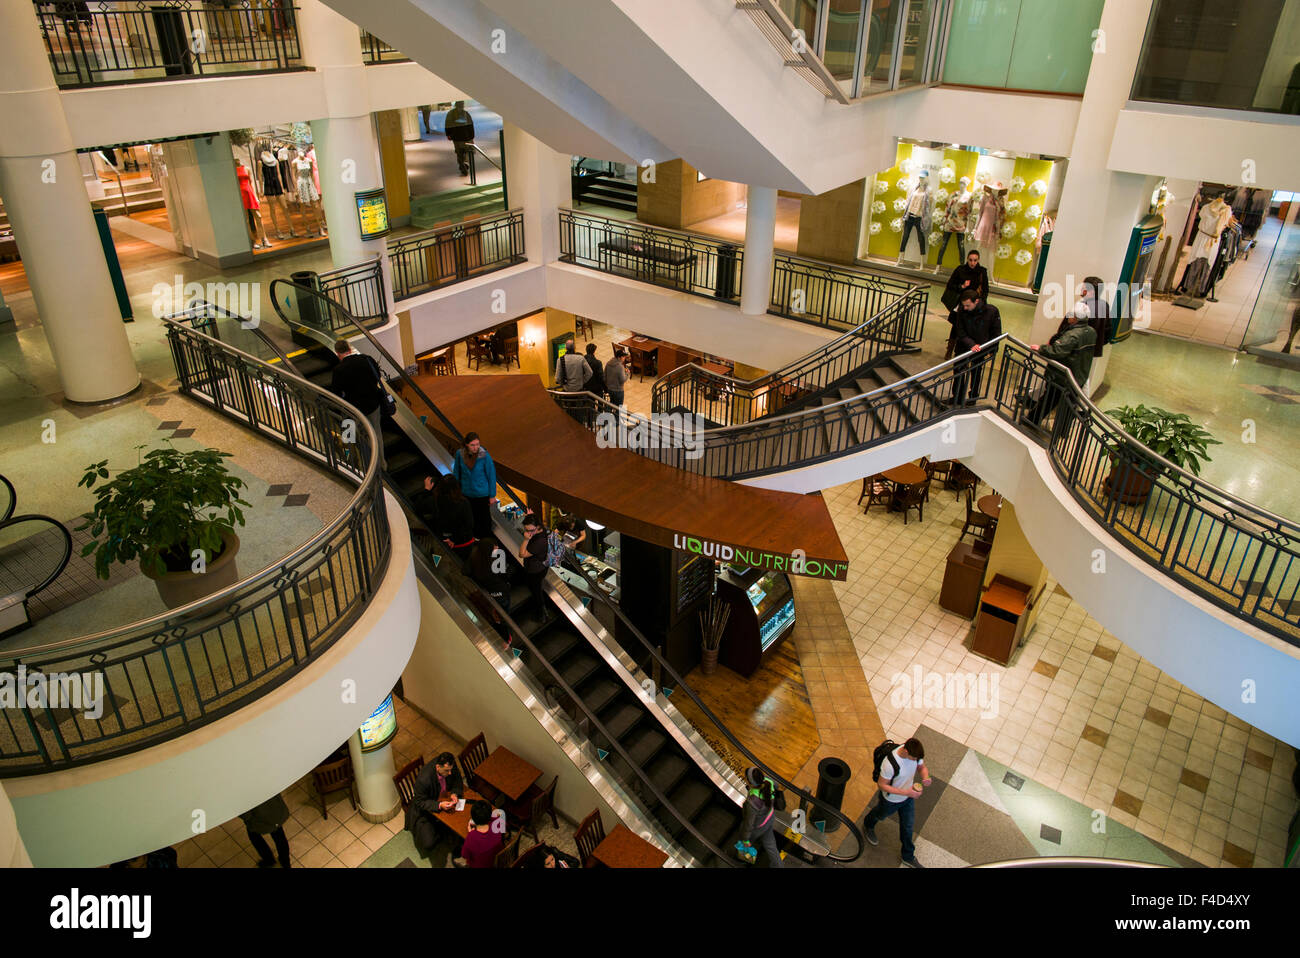 Canada, Montreal, Les Cours Mont-Royal, shopping center, interior Stock Photo